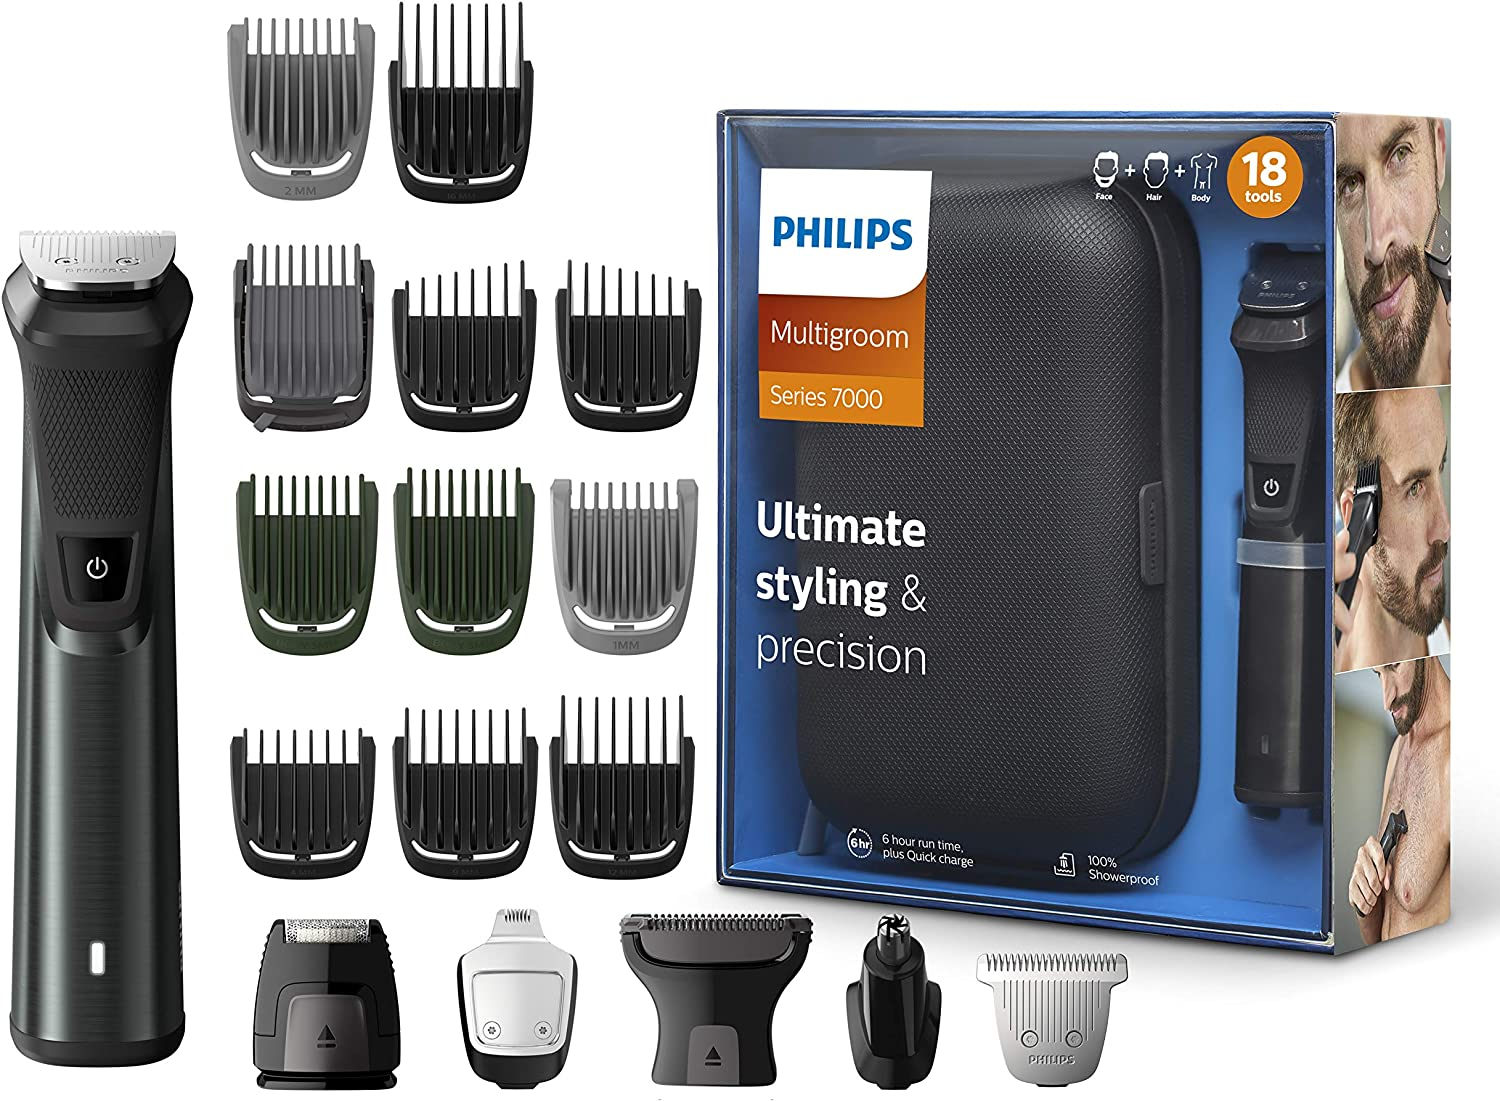 Philips mg7785/20 Multigroom Series 7000 18 en 1 – Recortador para cuerpo y cara,